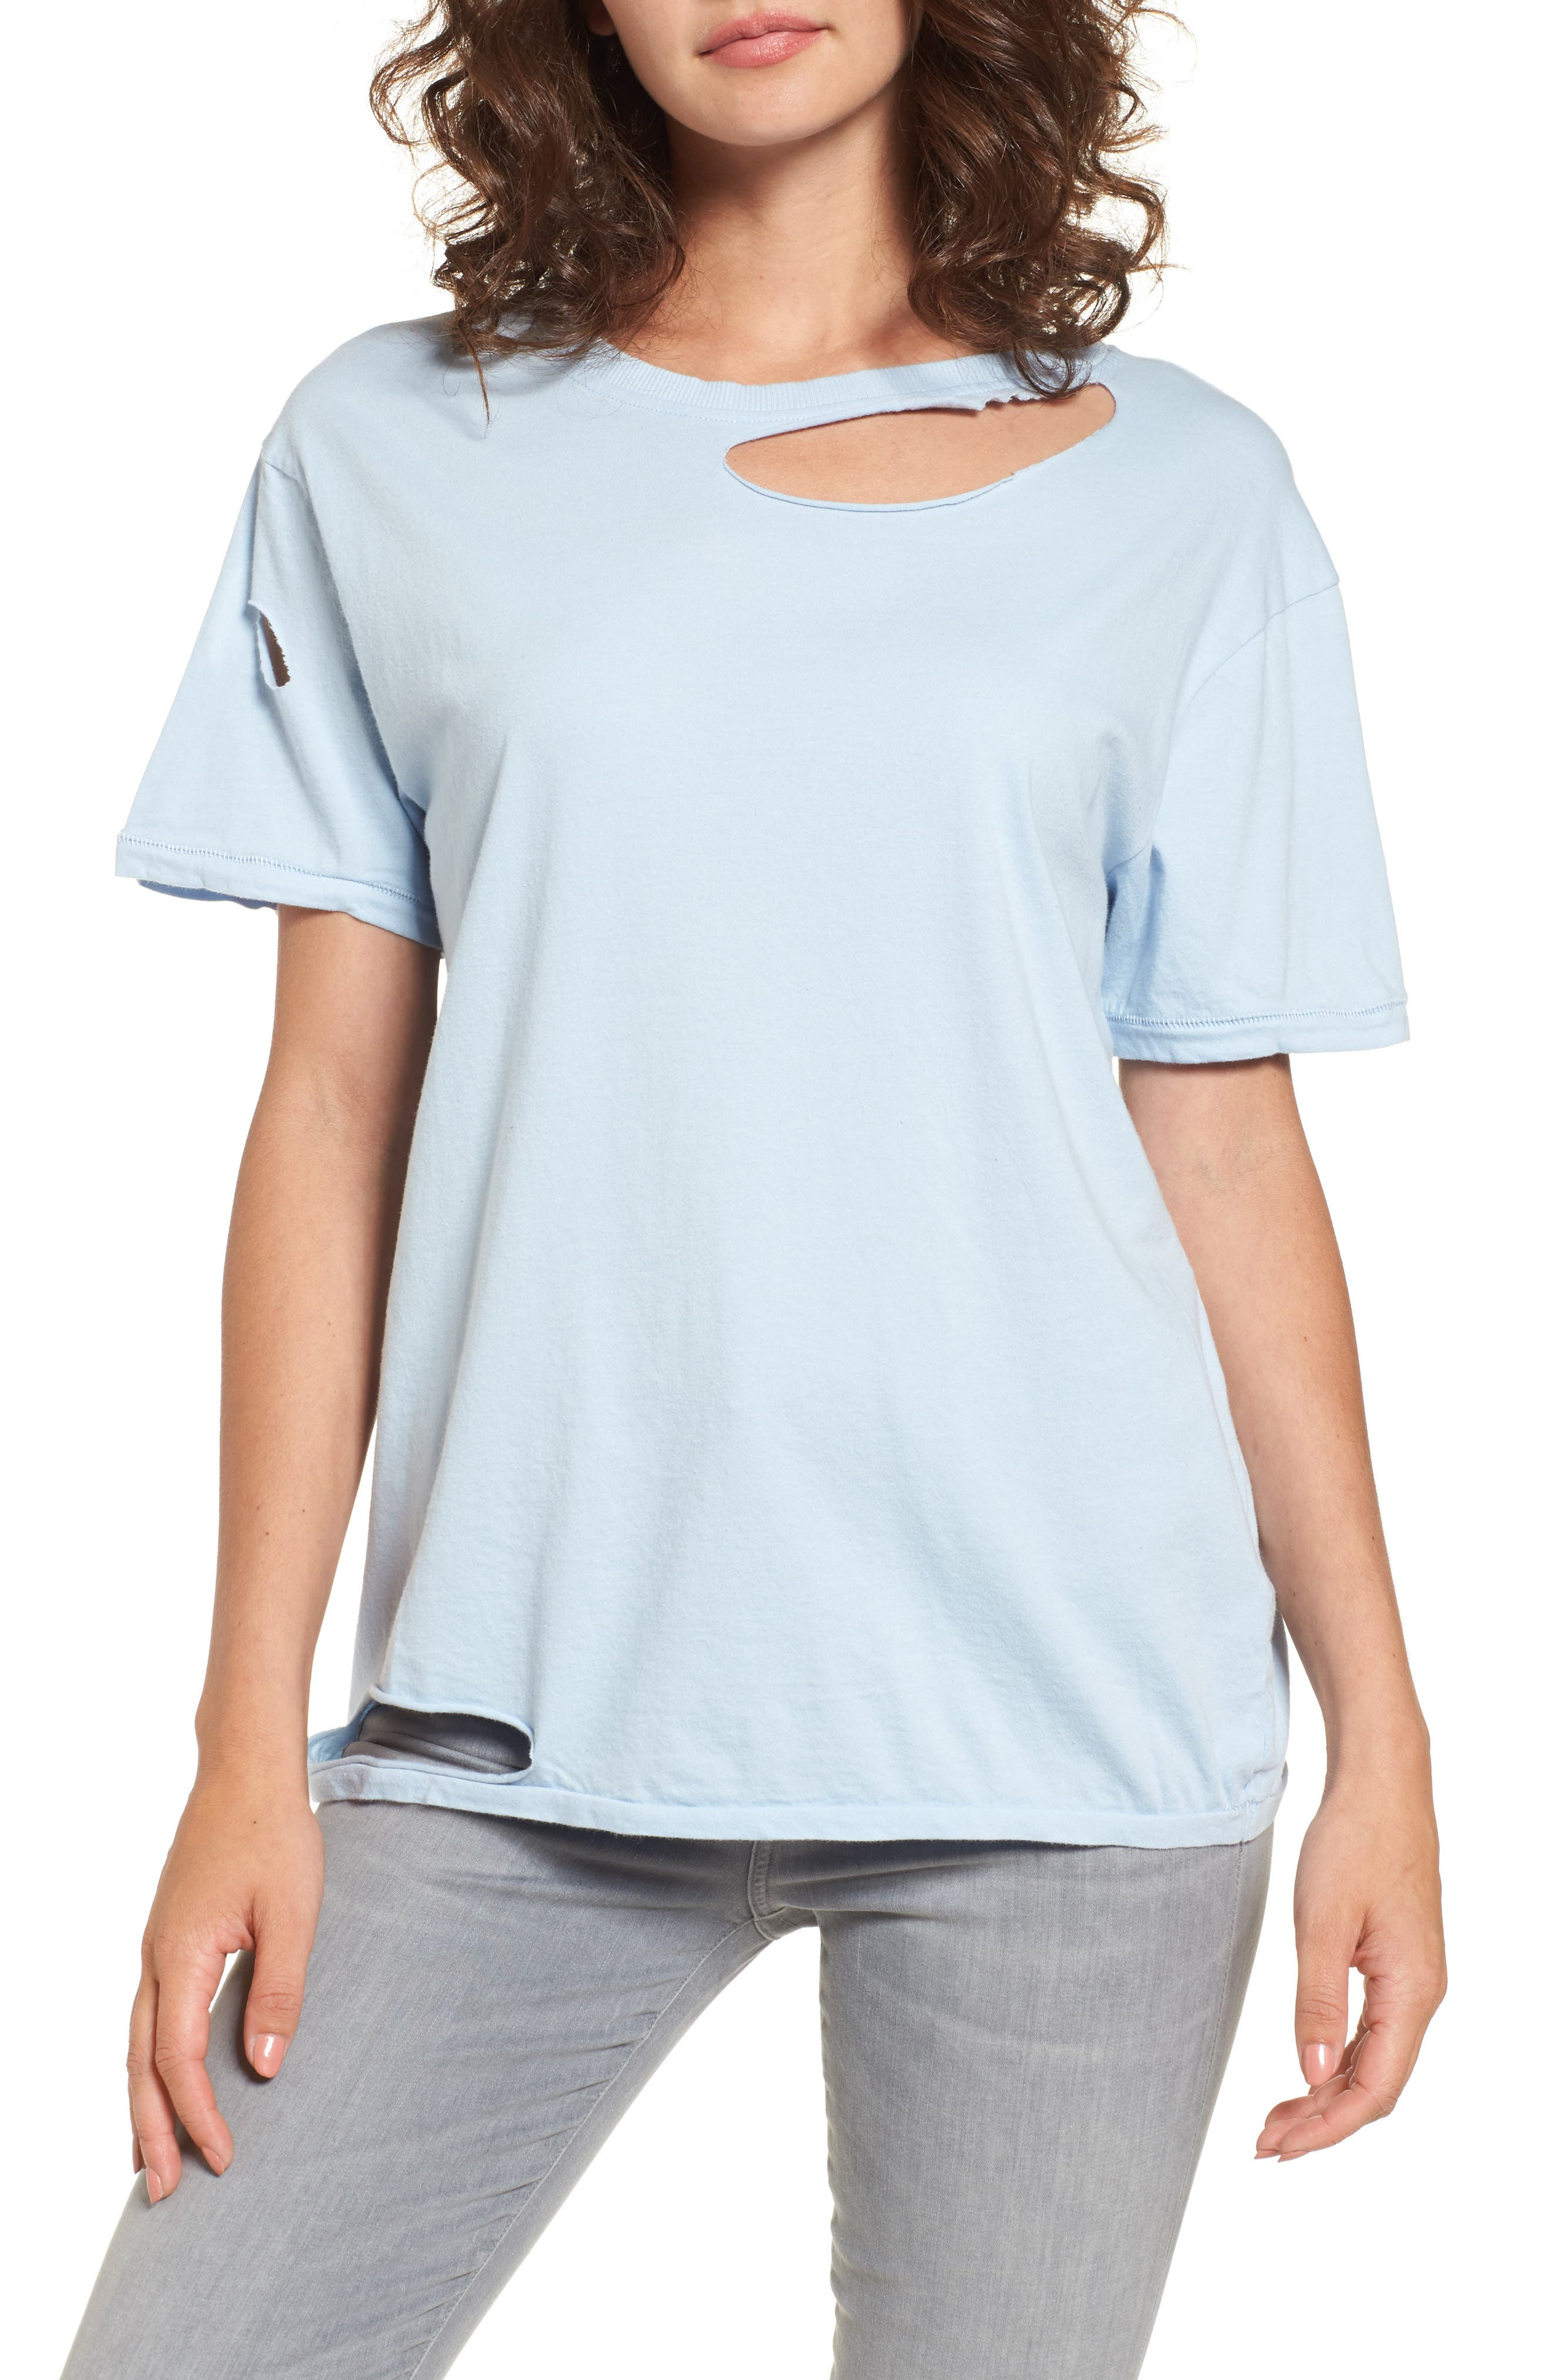 Topshop Ripped Cotton Tee